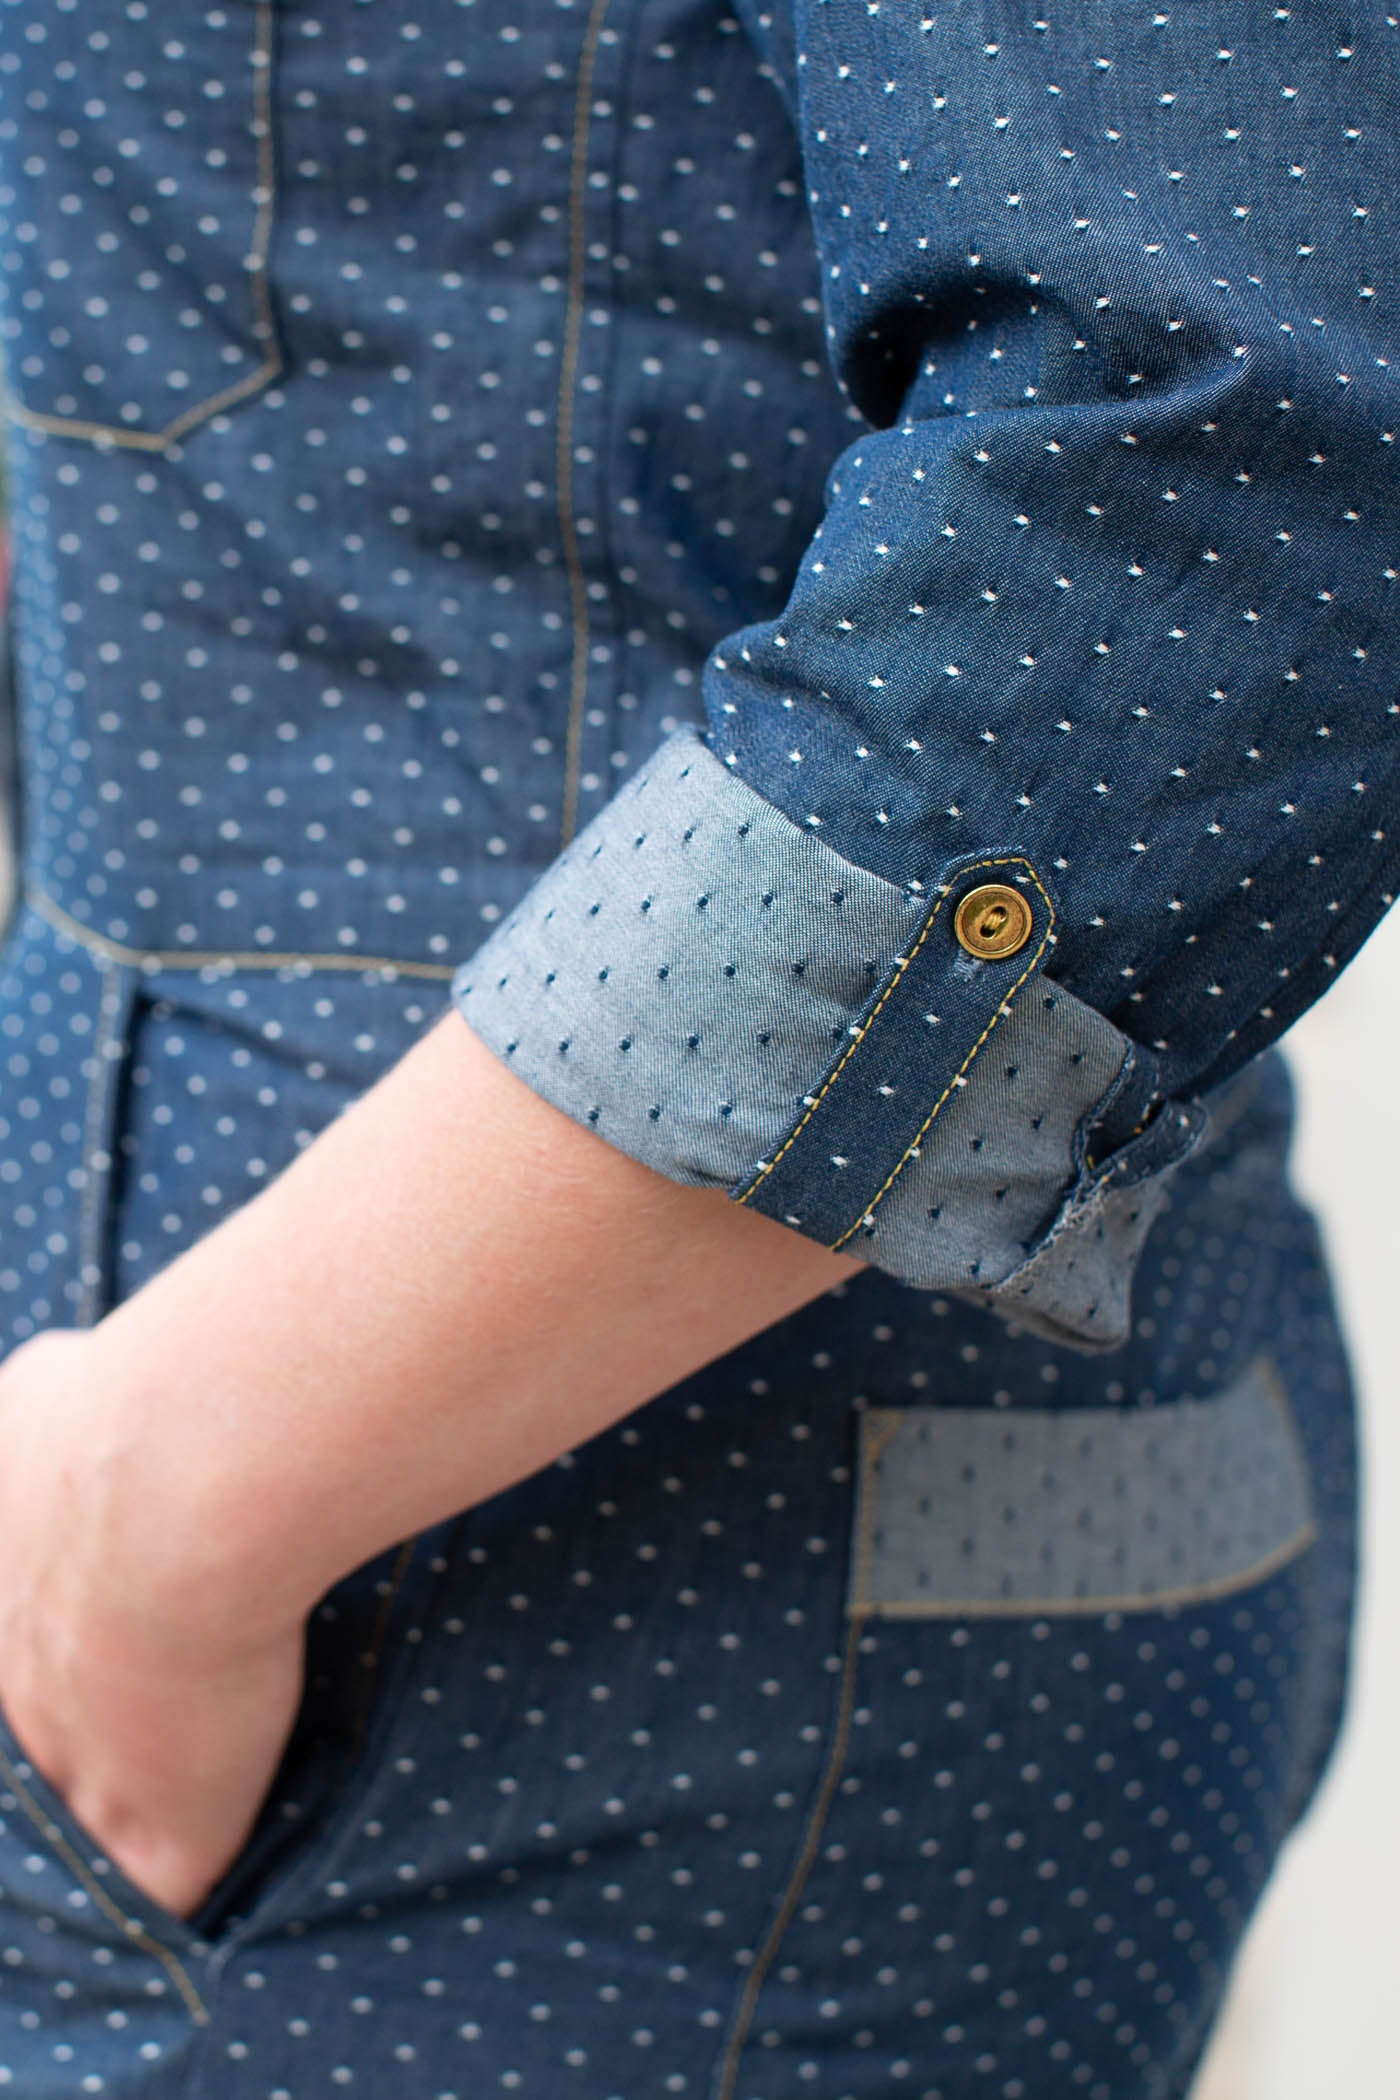 Detail photograph of Thelma by Merchant & Mills pattern with a cuff added to the pattern.  Fabric is indigo blue with white dots.